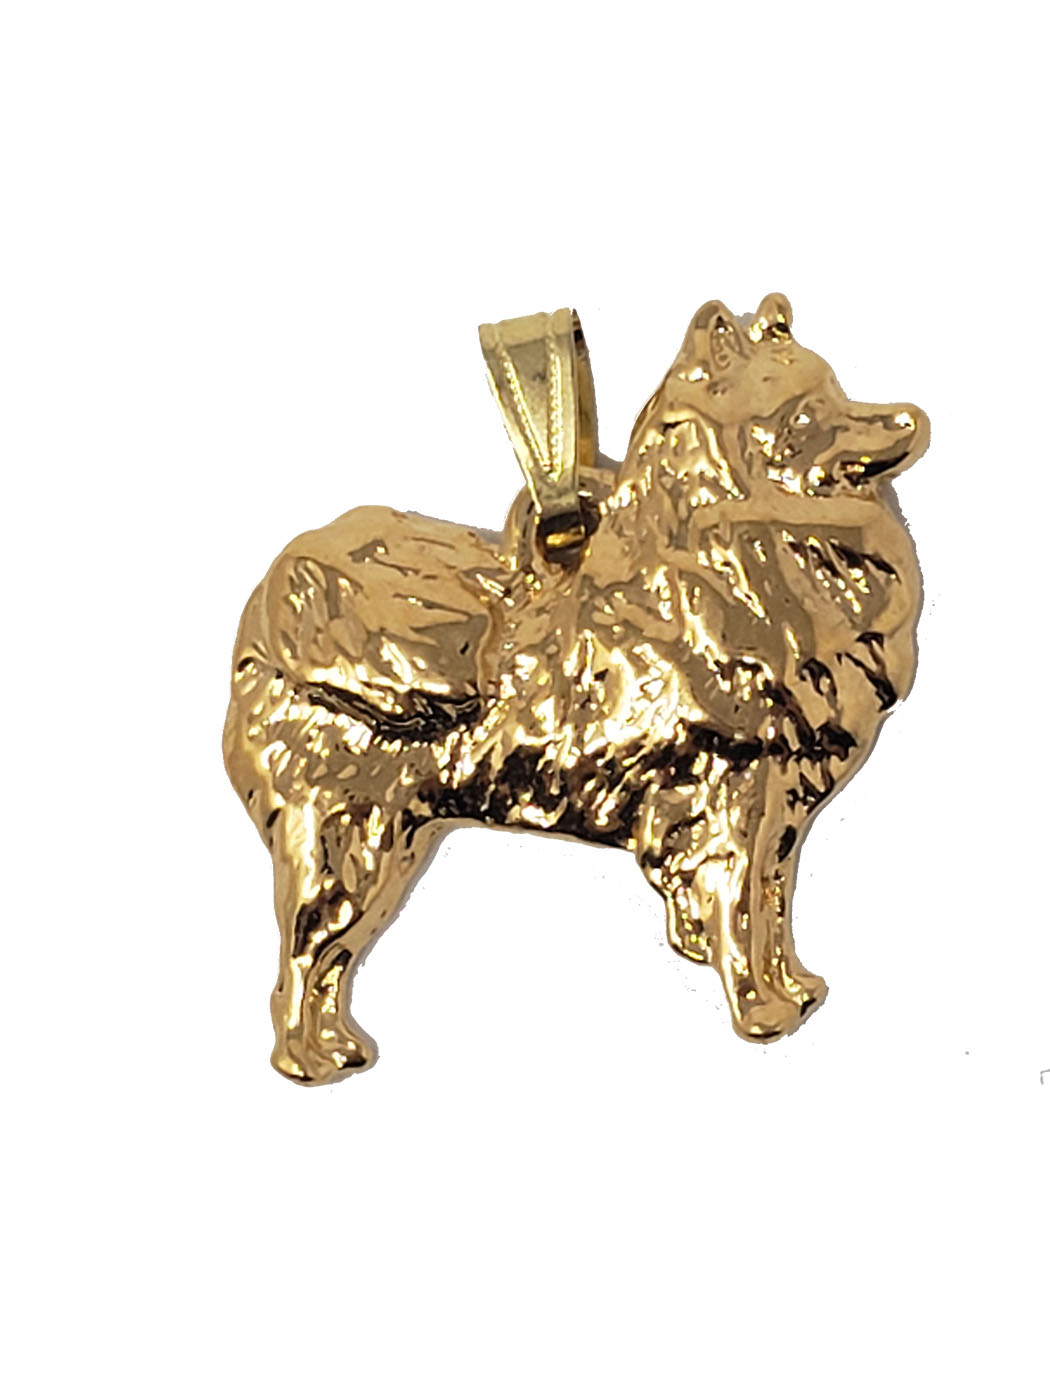 American Eskimo Dog 24K Gold Plated Pendant